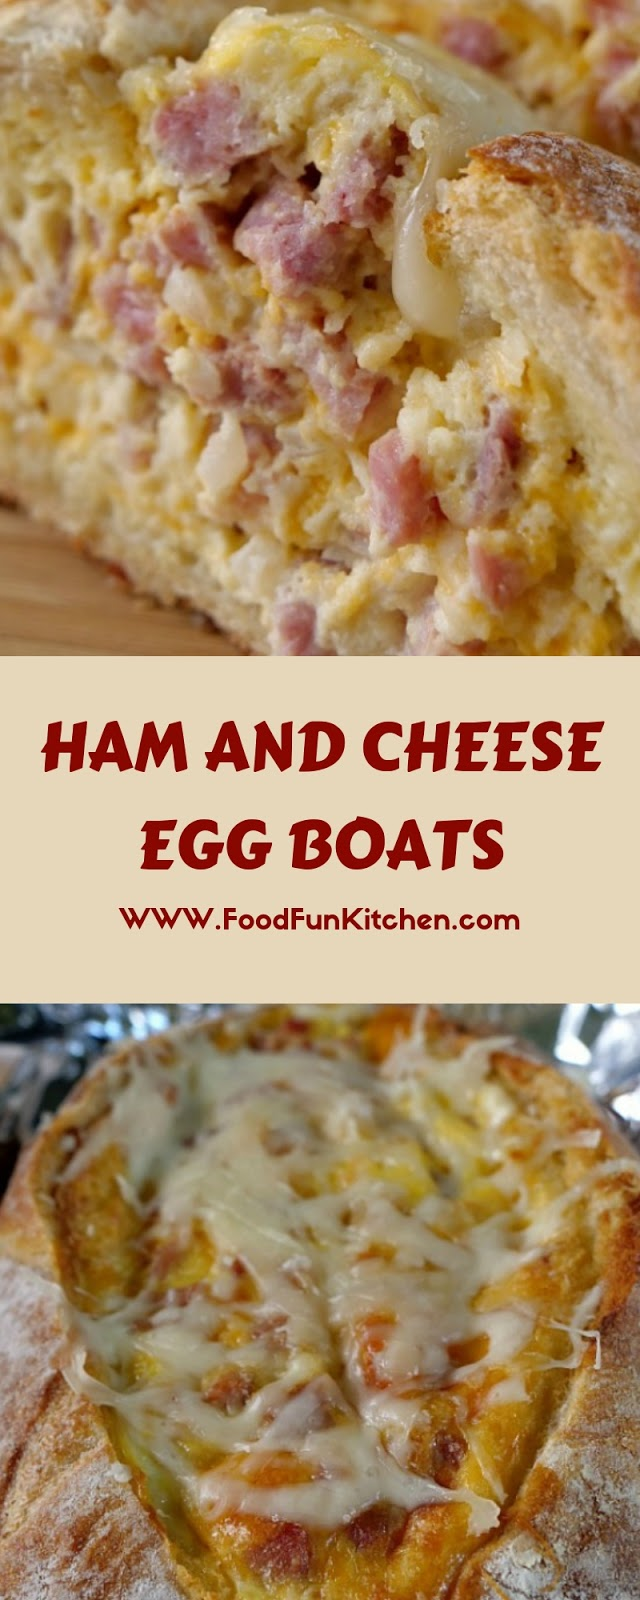 HAM AND CHEESE EGG BOATS